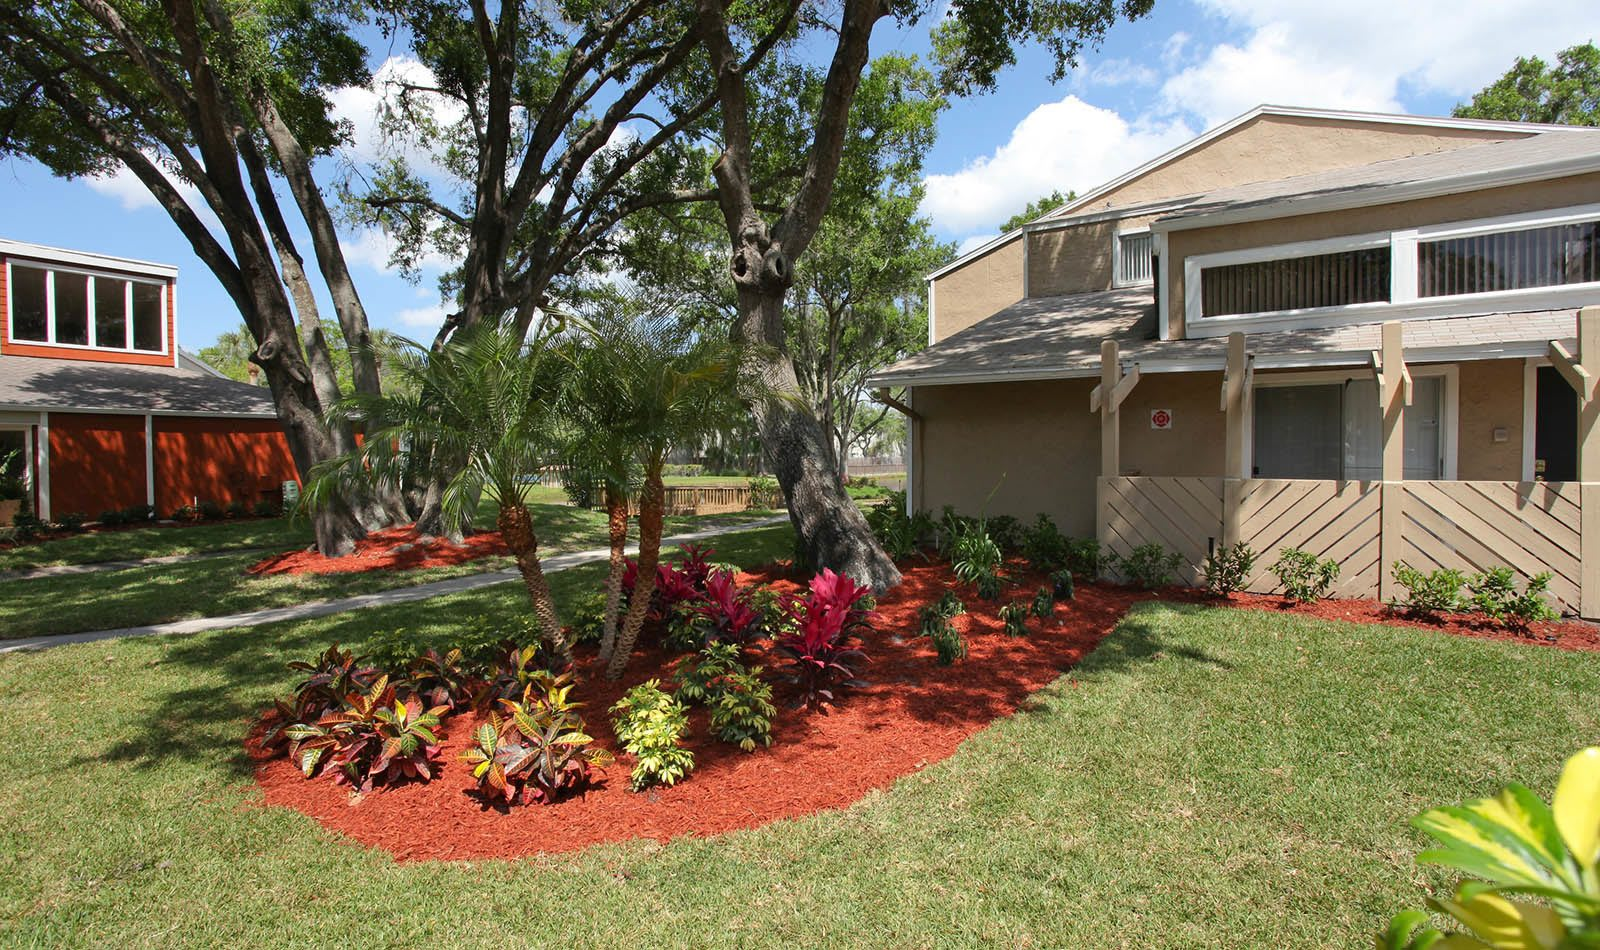 The grounds at Coopers Pond Apartments in Tampa, FL